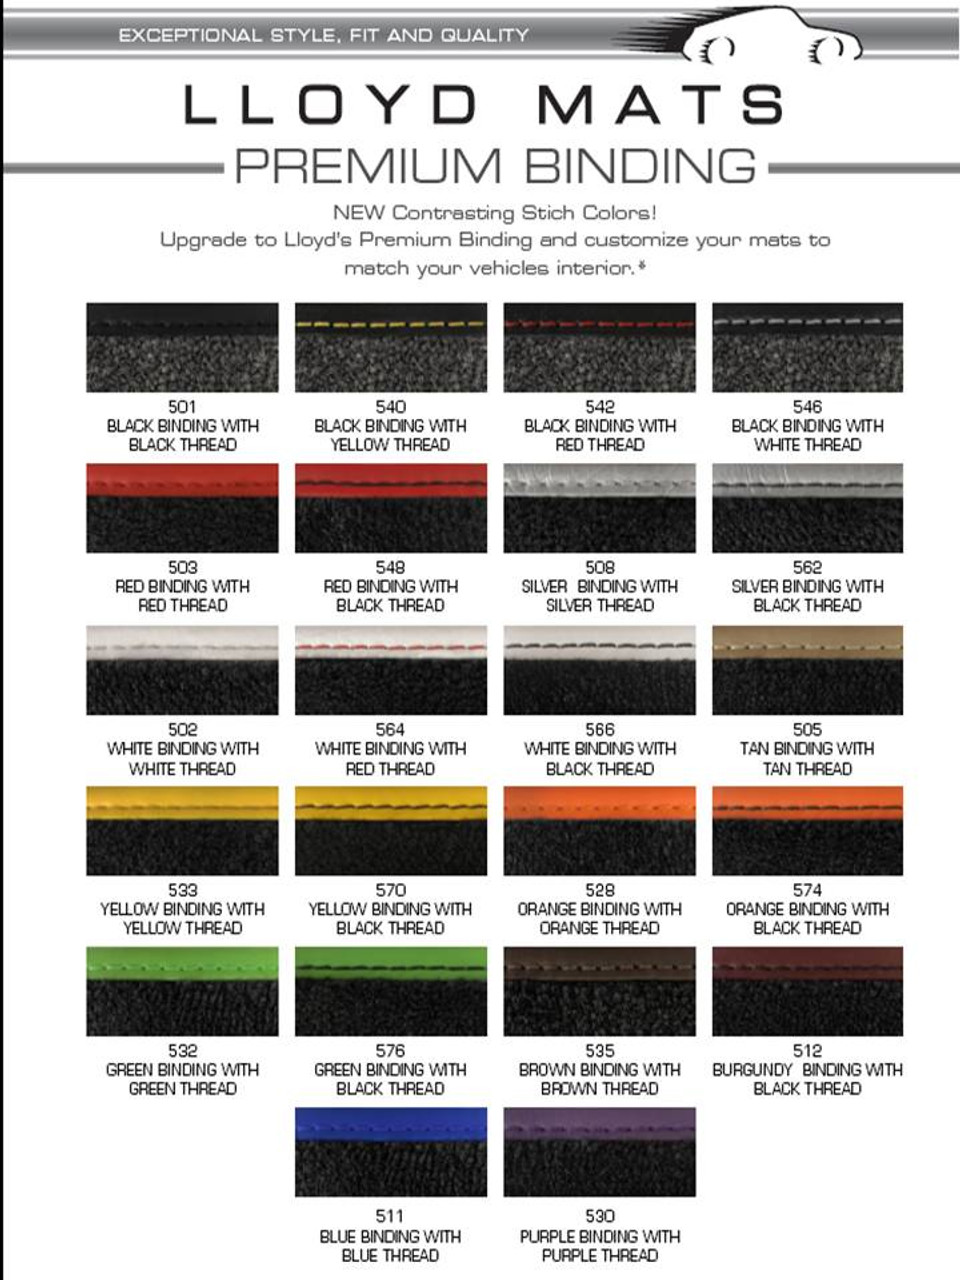 Premium Binding Colors